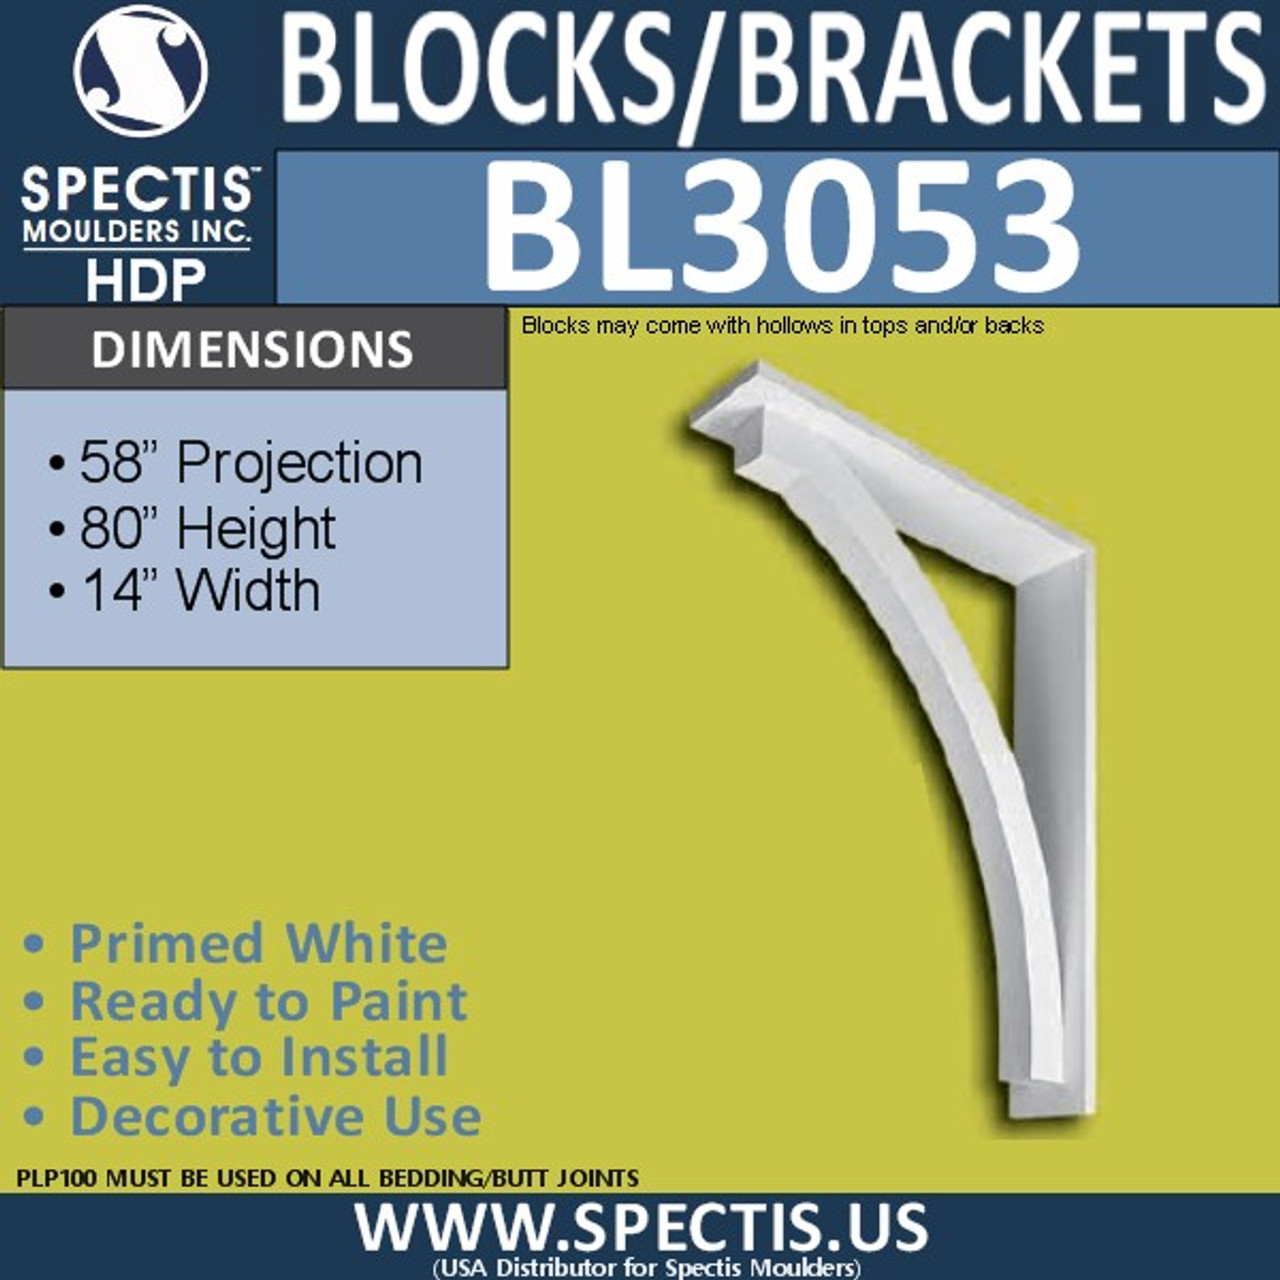 "BL3053 Eave Block or Bracket 14""W x 80""H x 58"" P"